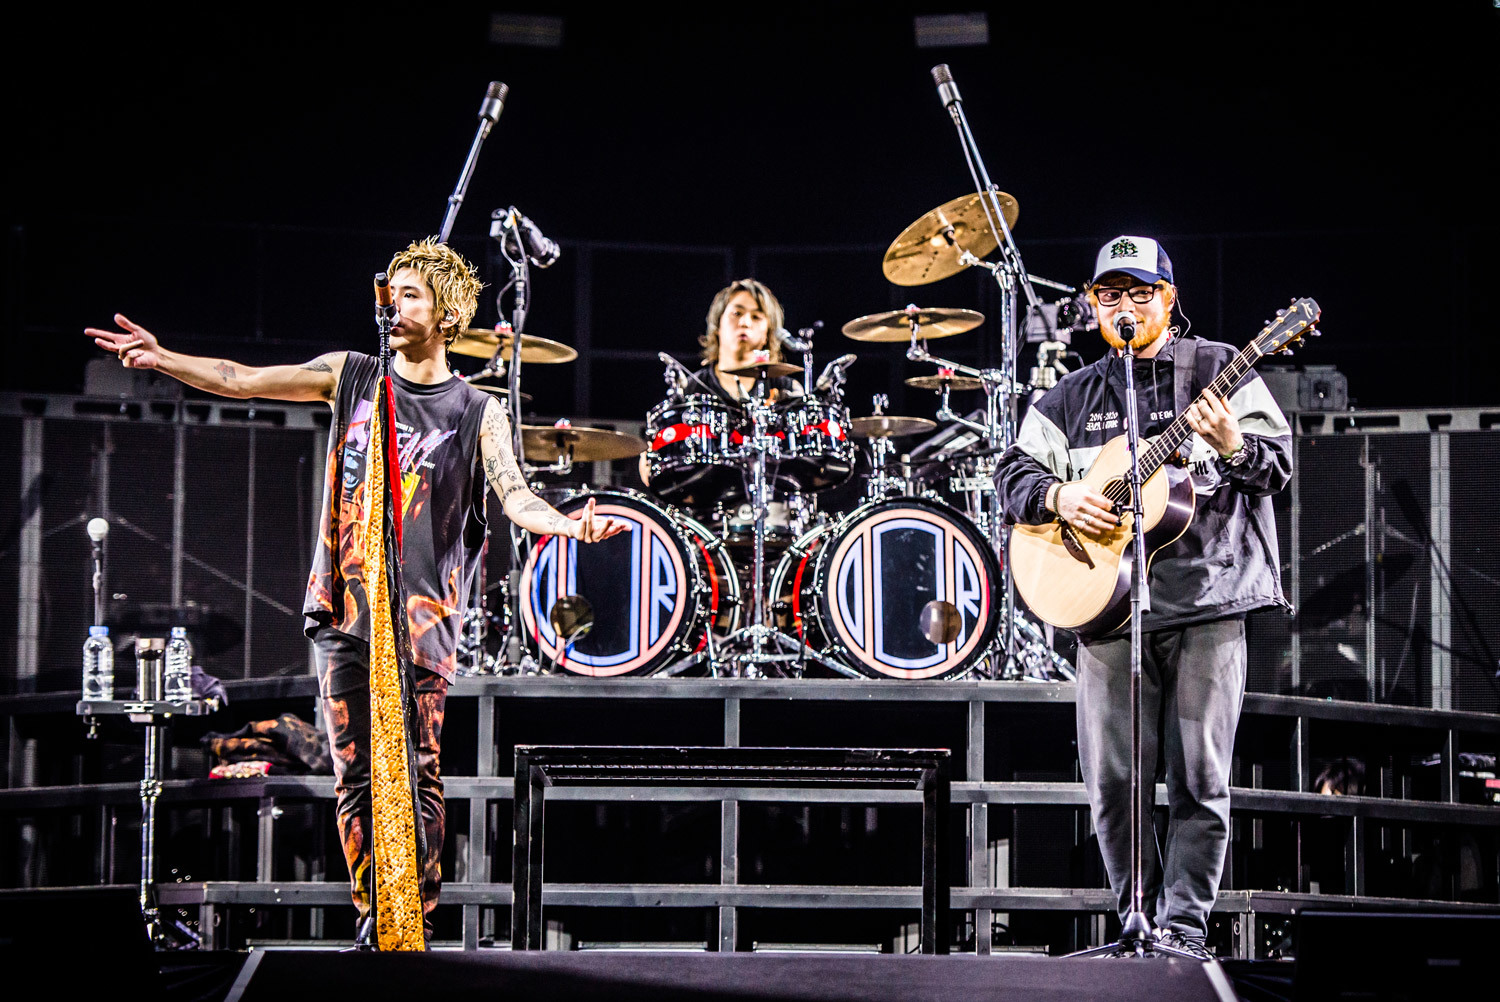 エド・シーラン / ONE OK ROCK photo by JulenPhoto